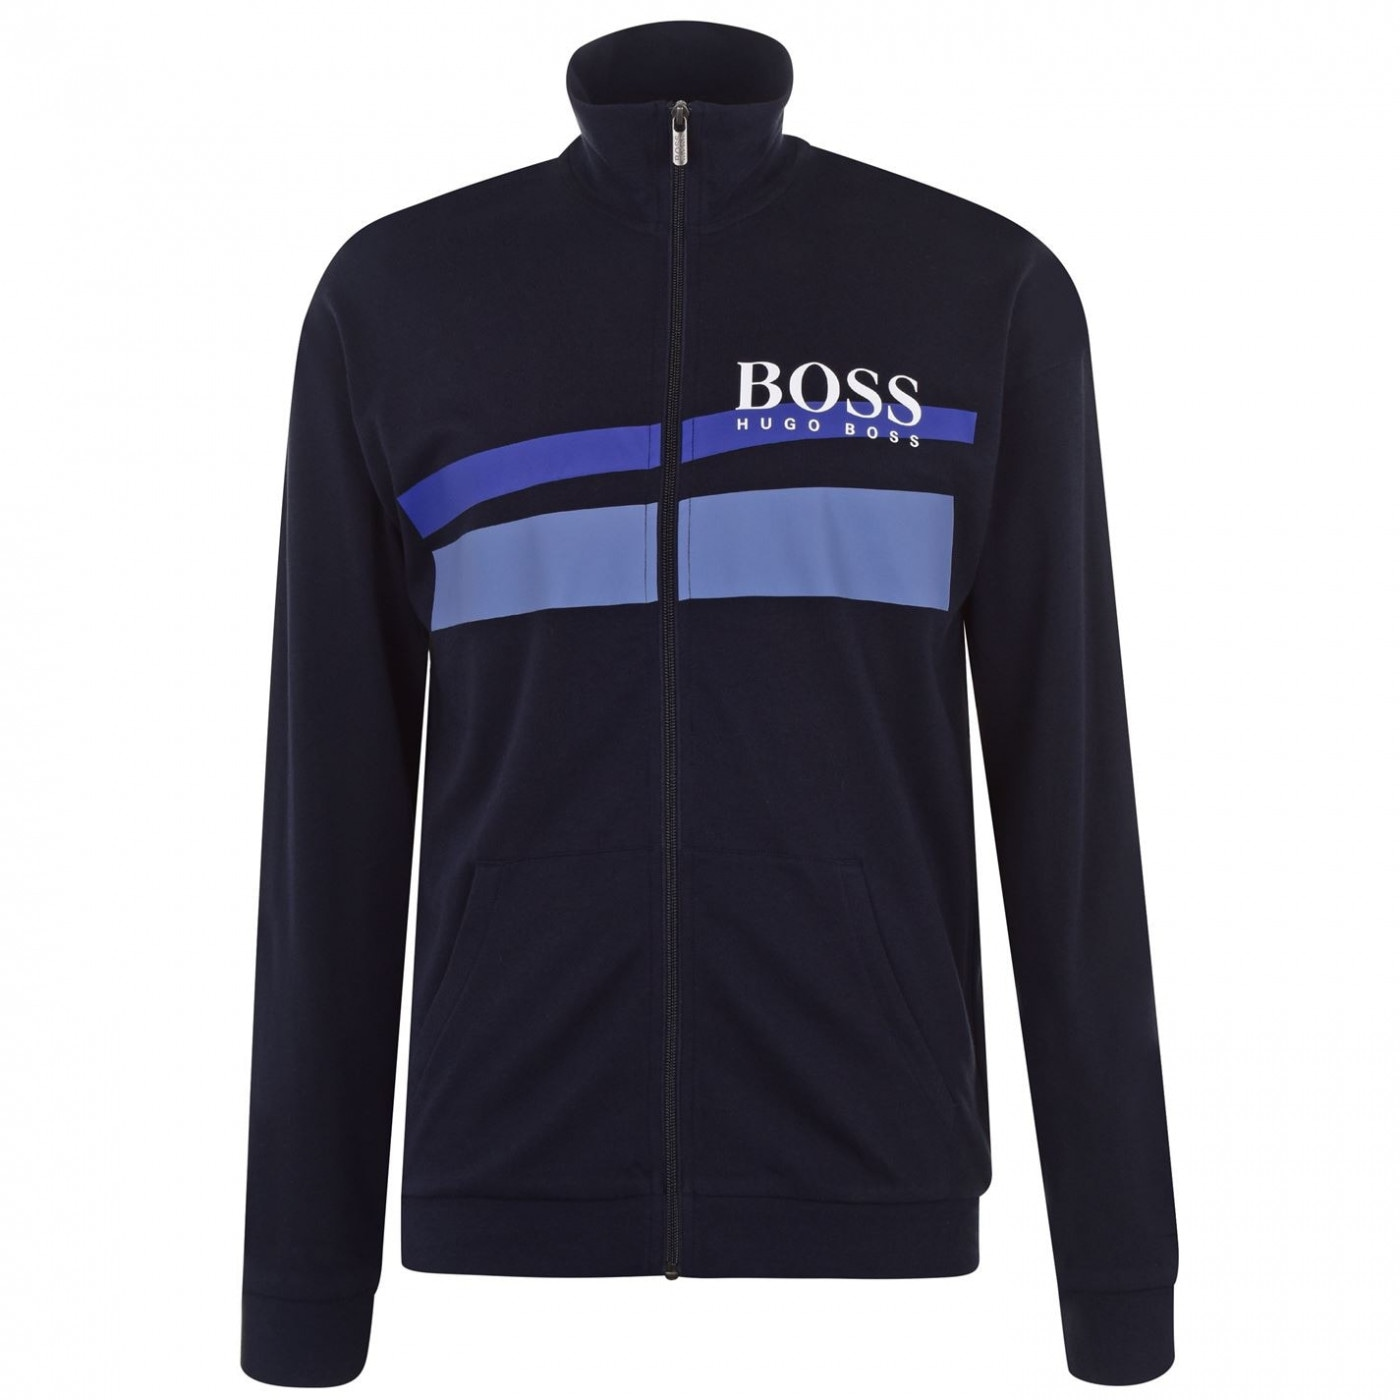 BOSS BODYWEAR Hugo Boss Tracksuit Top